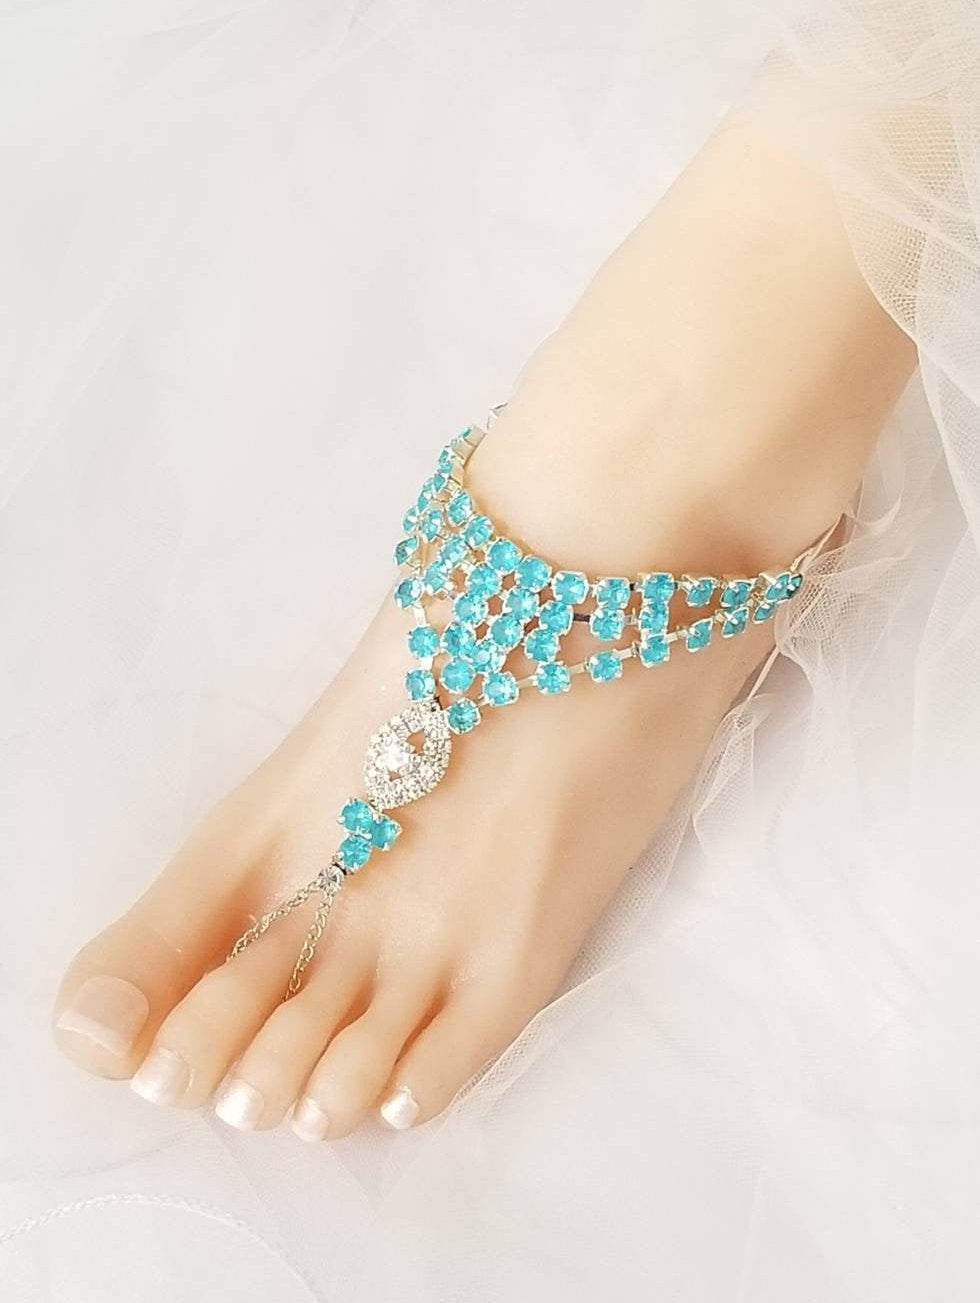 Blue Wedding Barefoot Sandals, Bridal Foot Jewelry, Rhinestone Silver Plated Footless Sandal, Beach Sandals -Sd025